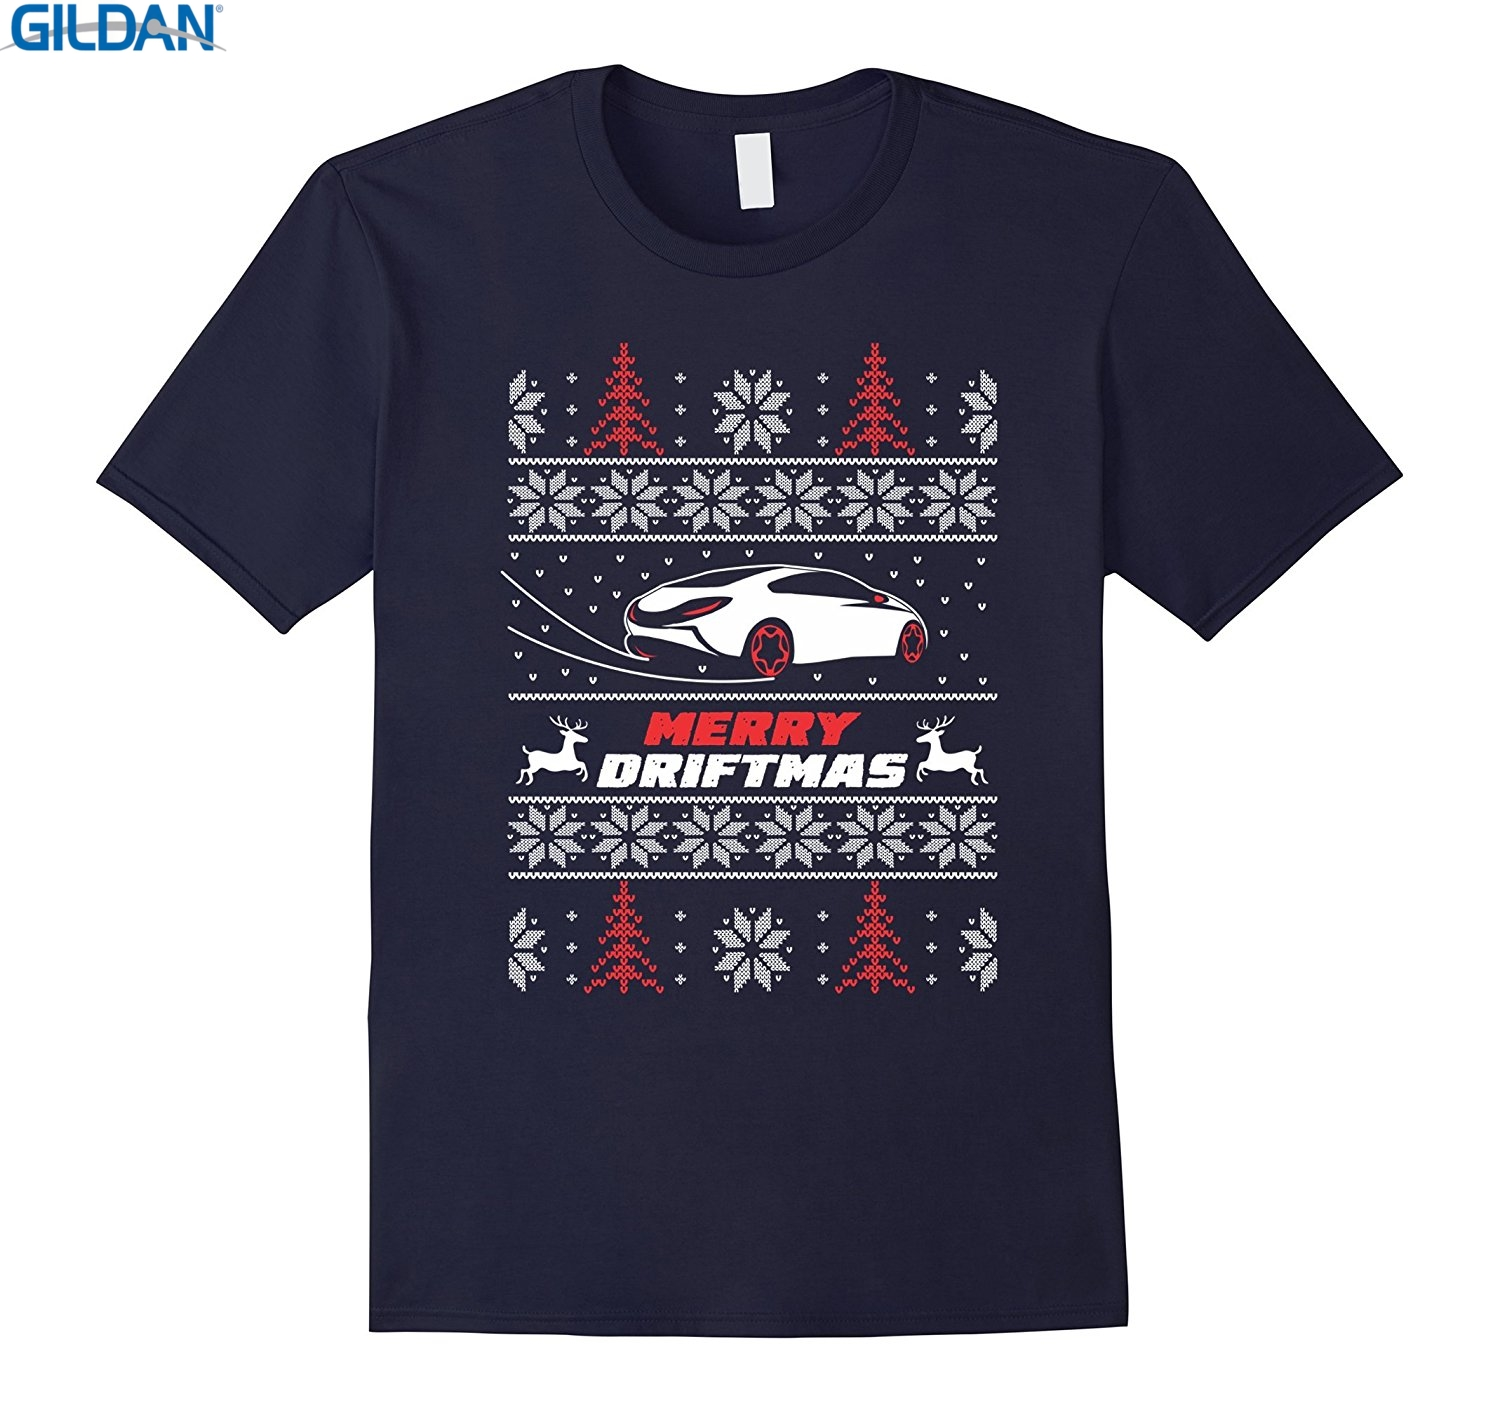 GILDAN 100% Cotton O-neck custom printed T-shirt Ugly Car S13 Sweater Christmas Shirt Merry Driftmas ...